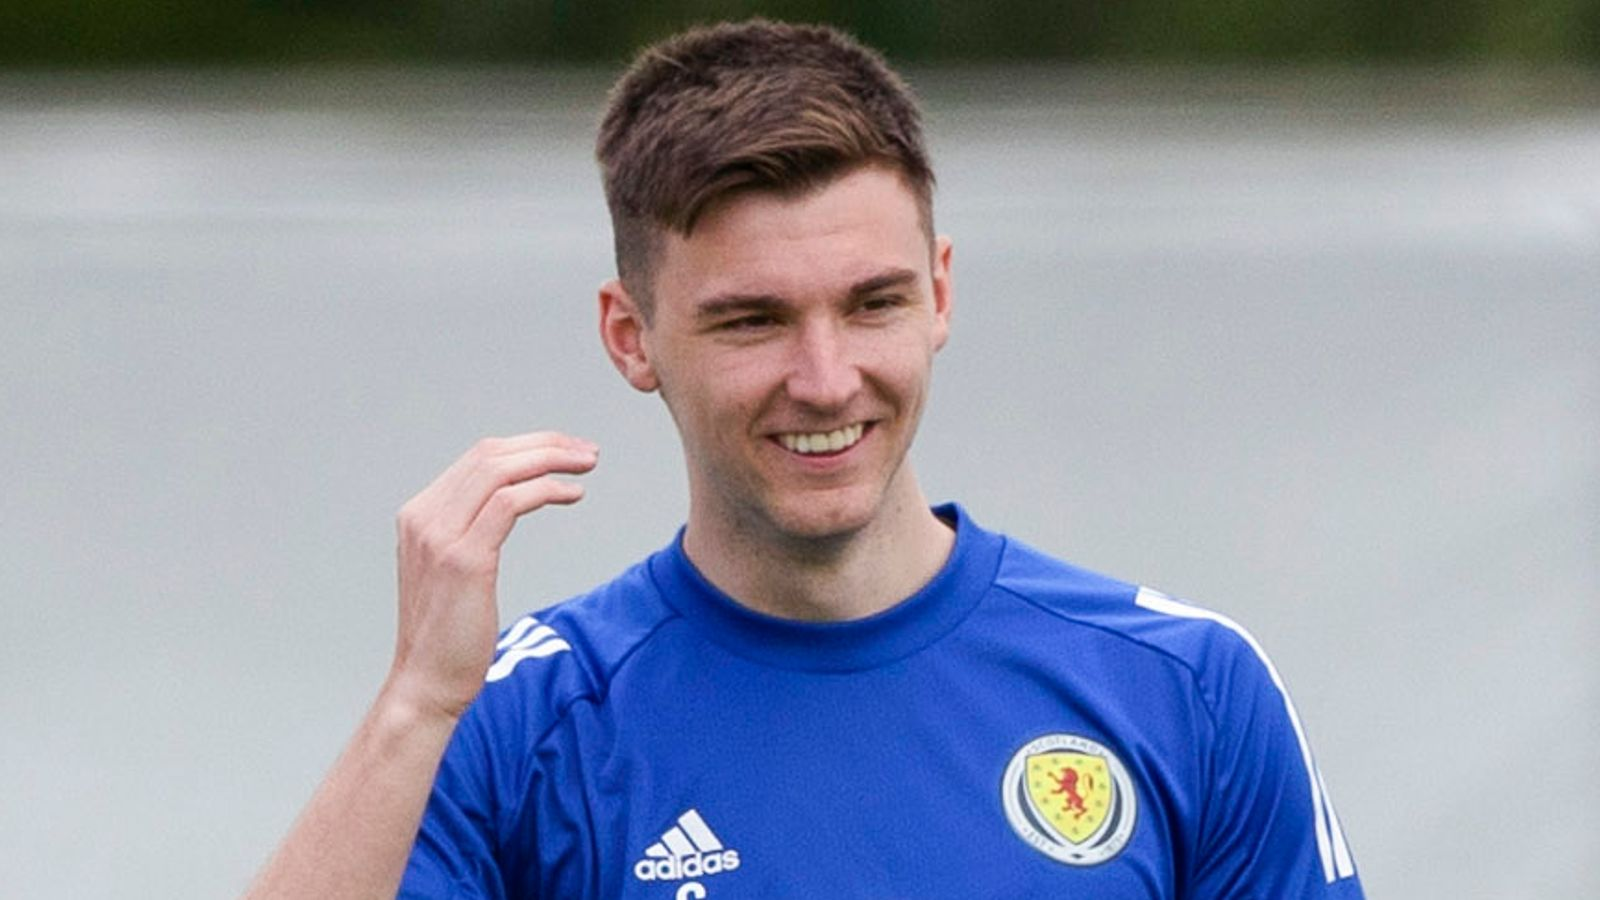 Kieran Tierney: Scotland defender 'fit and available' to face England in Friday's Euro 2020 Group D game